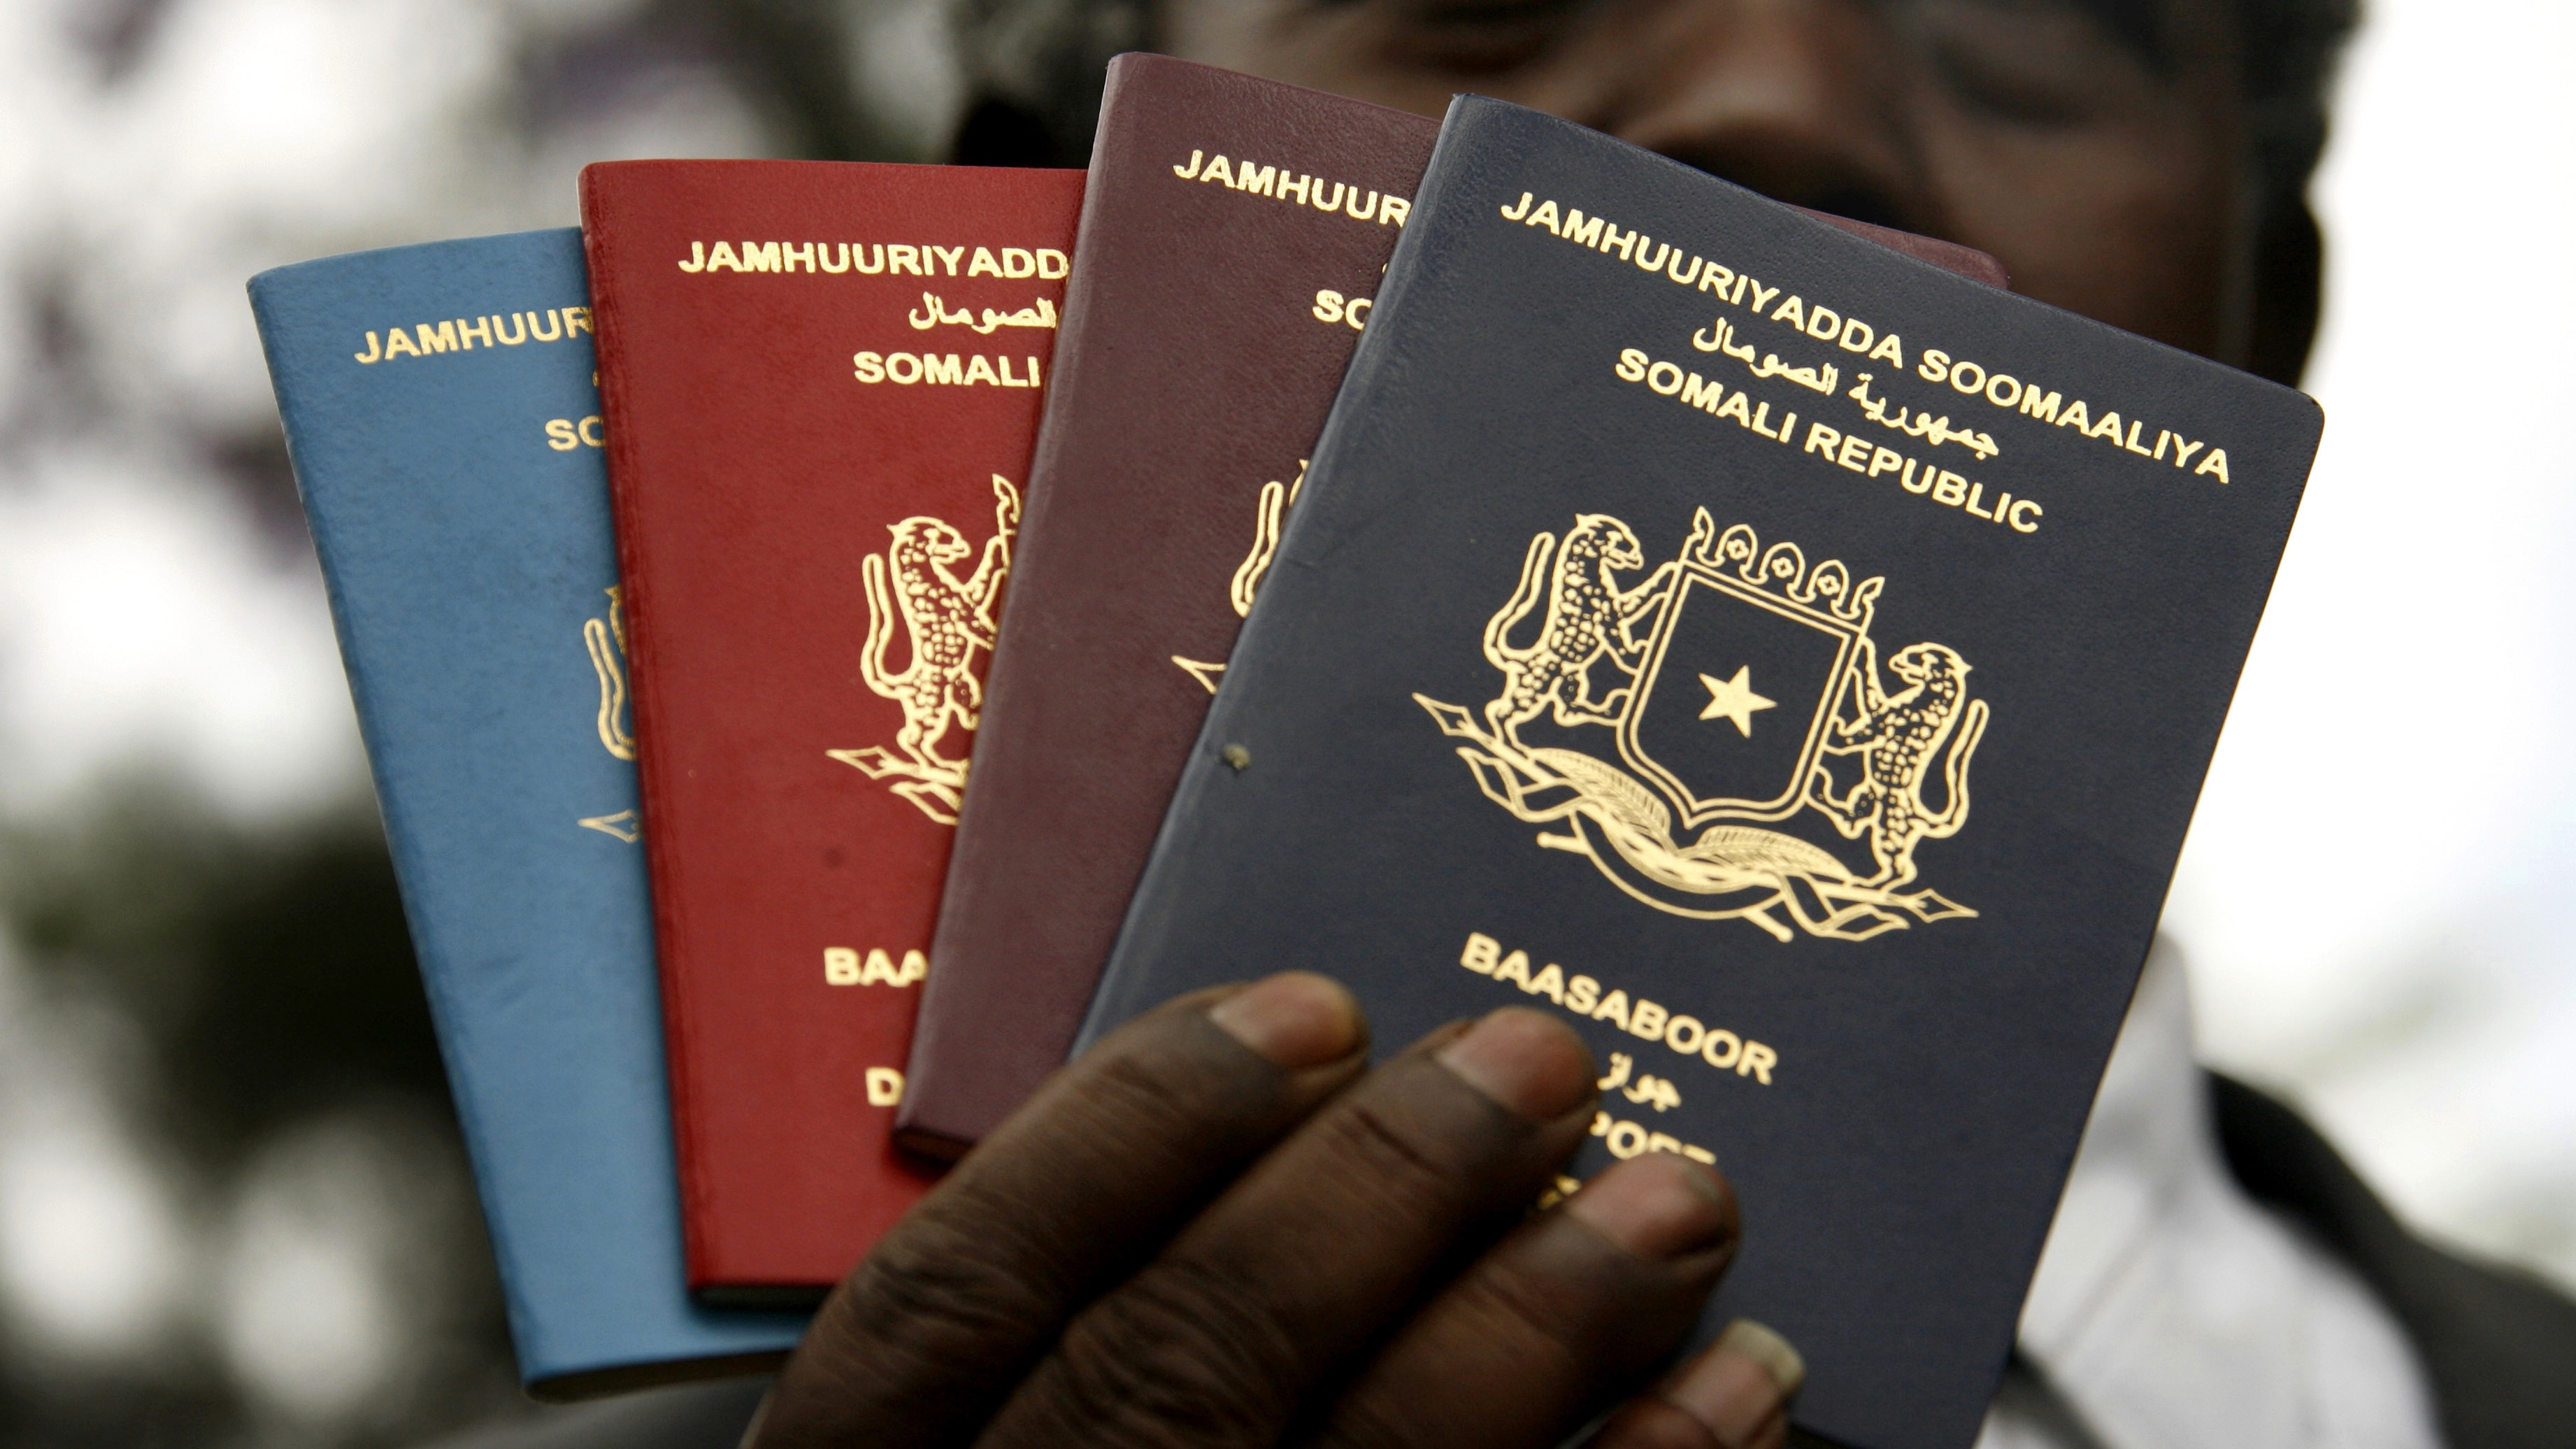 Abdullahi Gafow Mohamud, director of immigration for the transitional federal government of the Somali Republic, holds up new passports at the country's embassy in the Kenyan capital Nairobi, November 8, 2006. The Republic of Somalia is launching the new passports to meet international security standards and to prevent forgeries that were common with previous passports from the anarchic state on the Horn of Africa.  REUTERS/Finbarr O'Reilly (KENYA) - GM1DTWZJQUAA